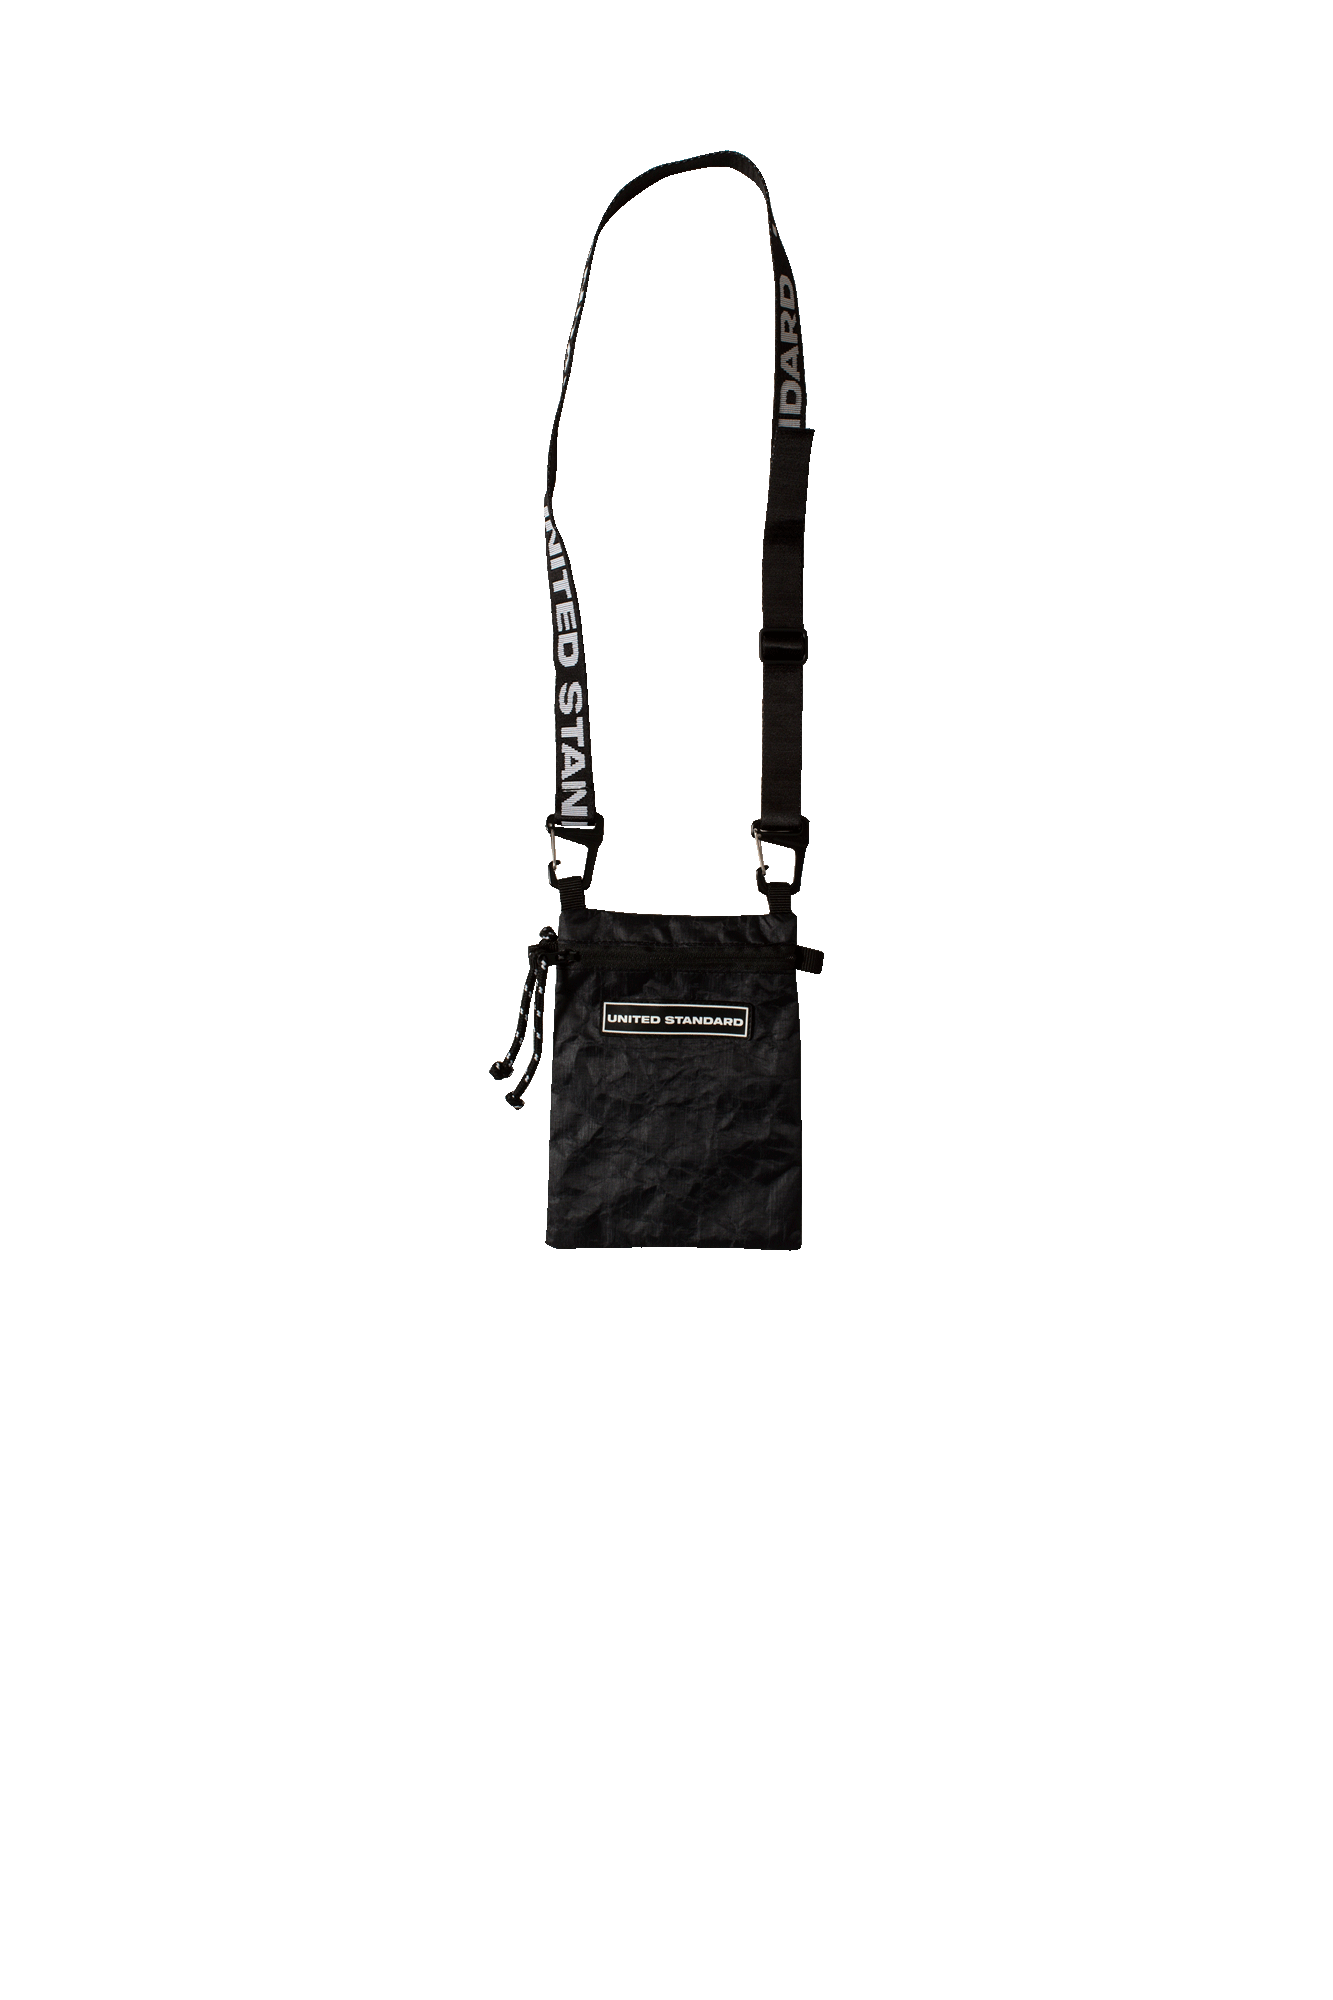 Black Neckpack Black